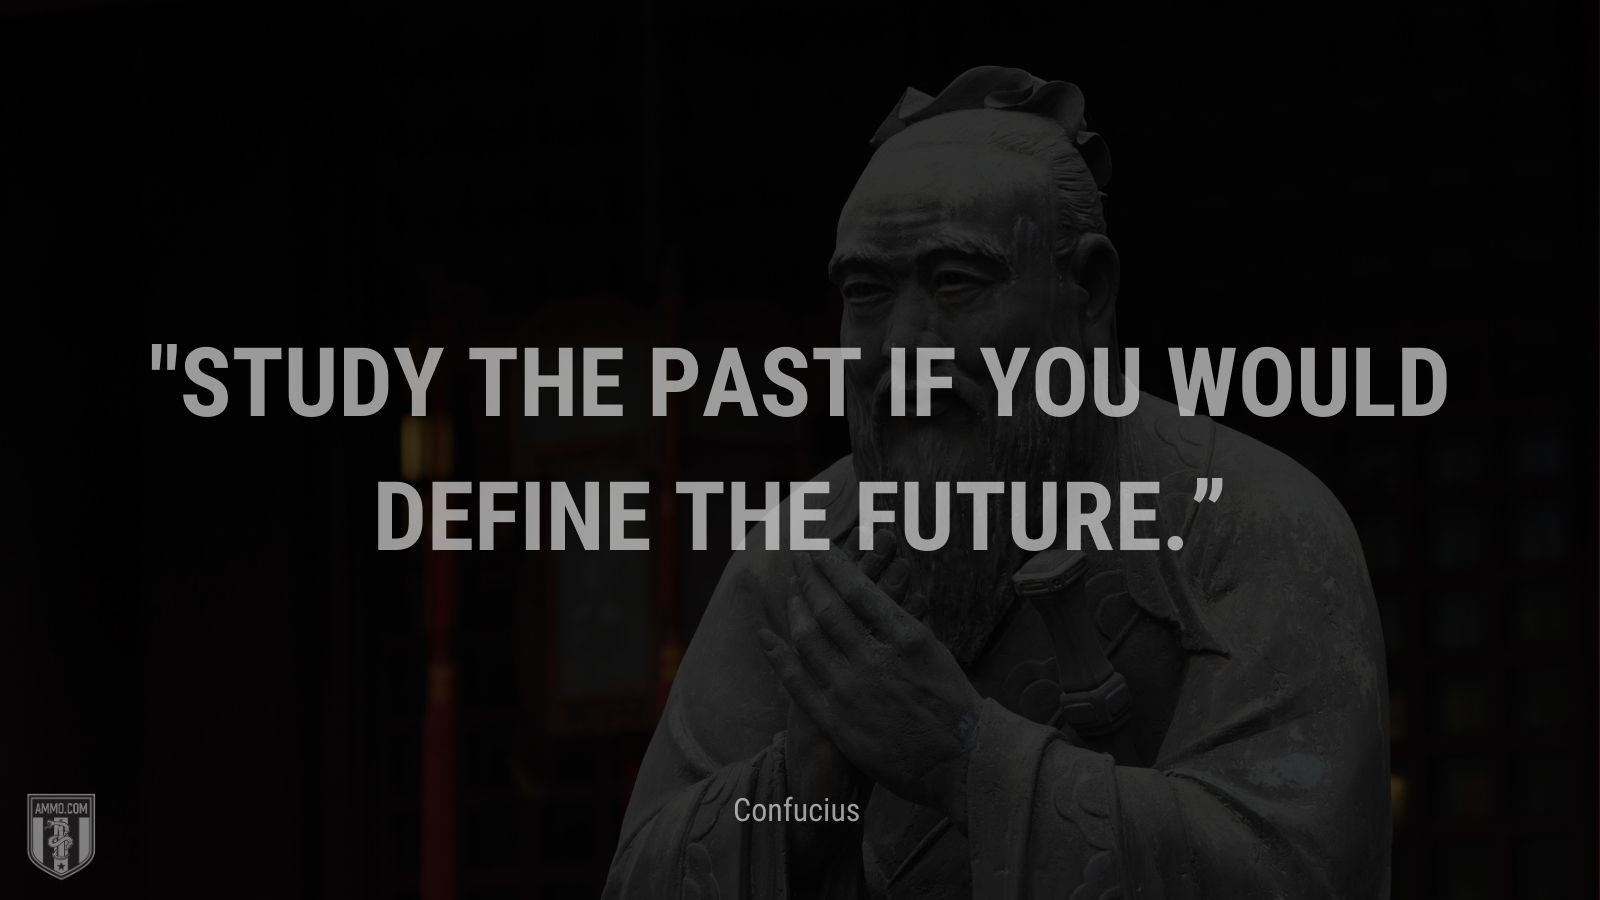 """""""Study the past if you would define the future."""" - Confucius"""